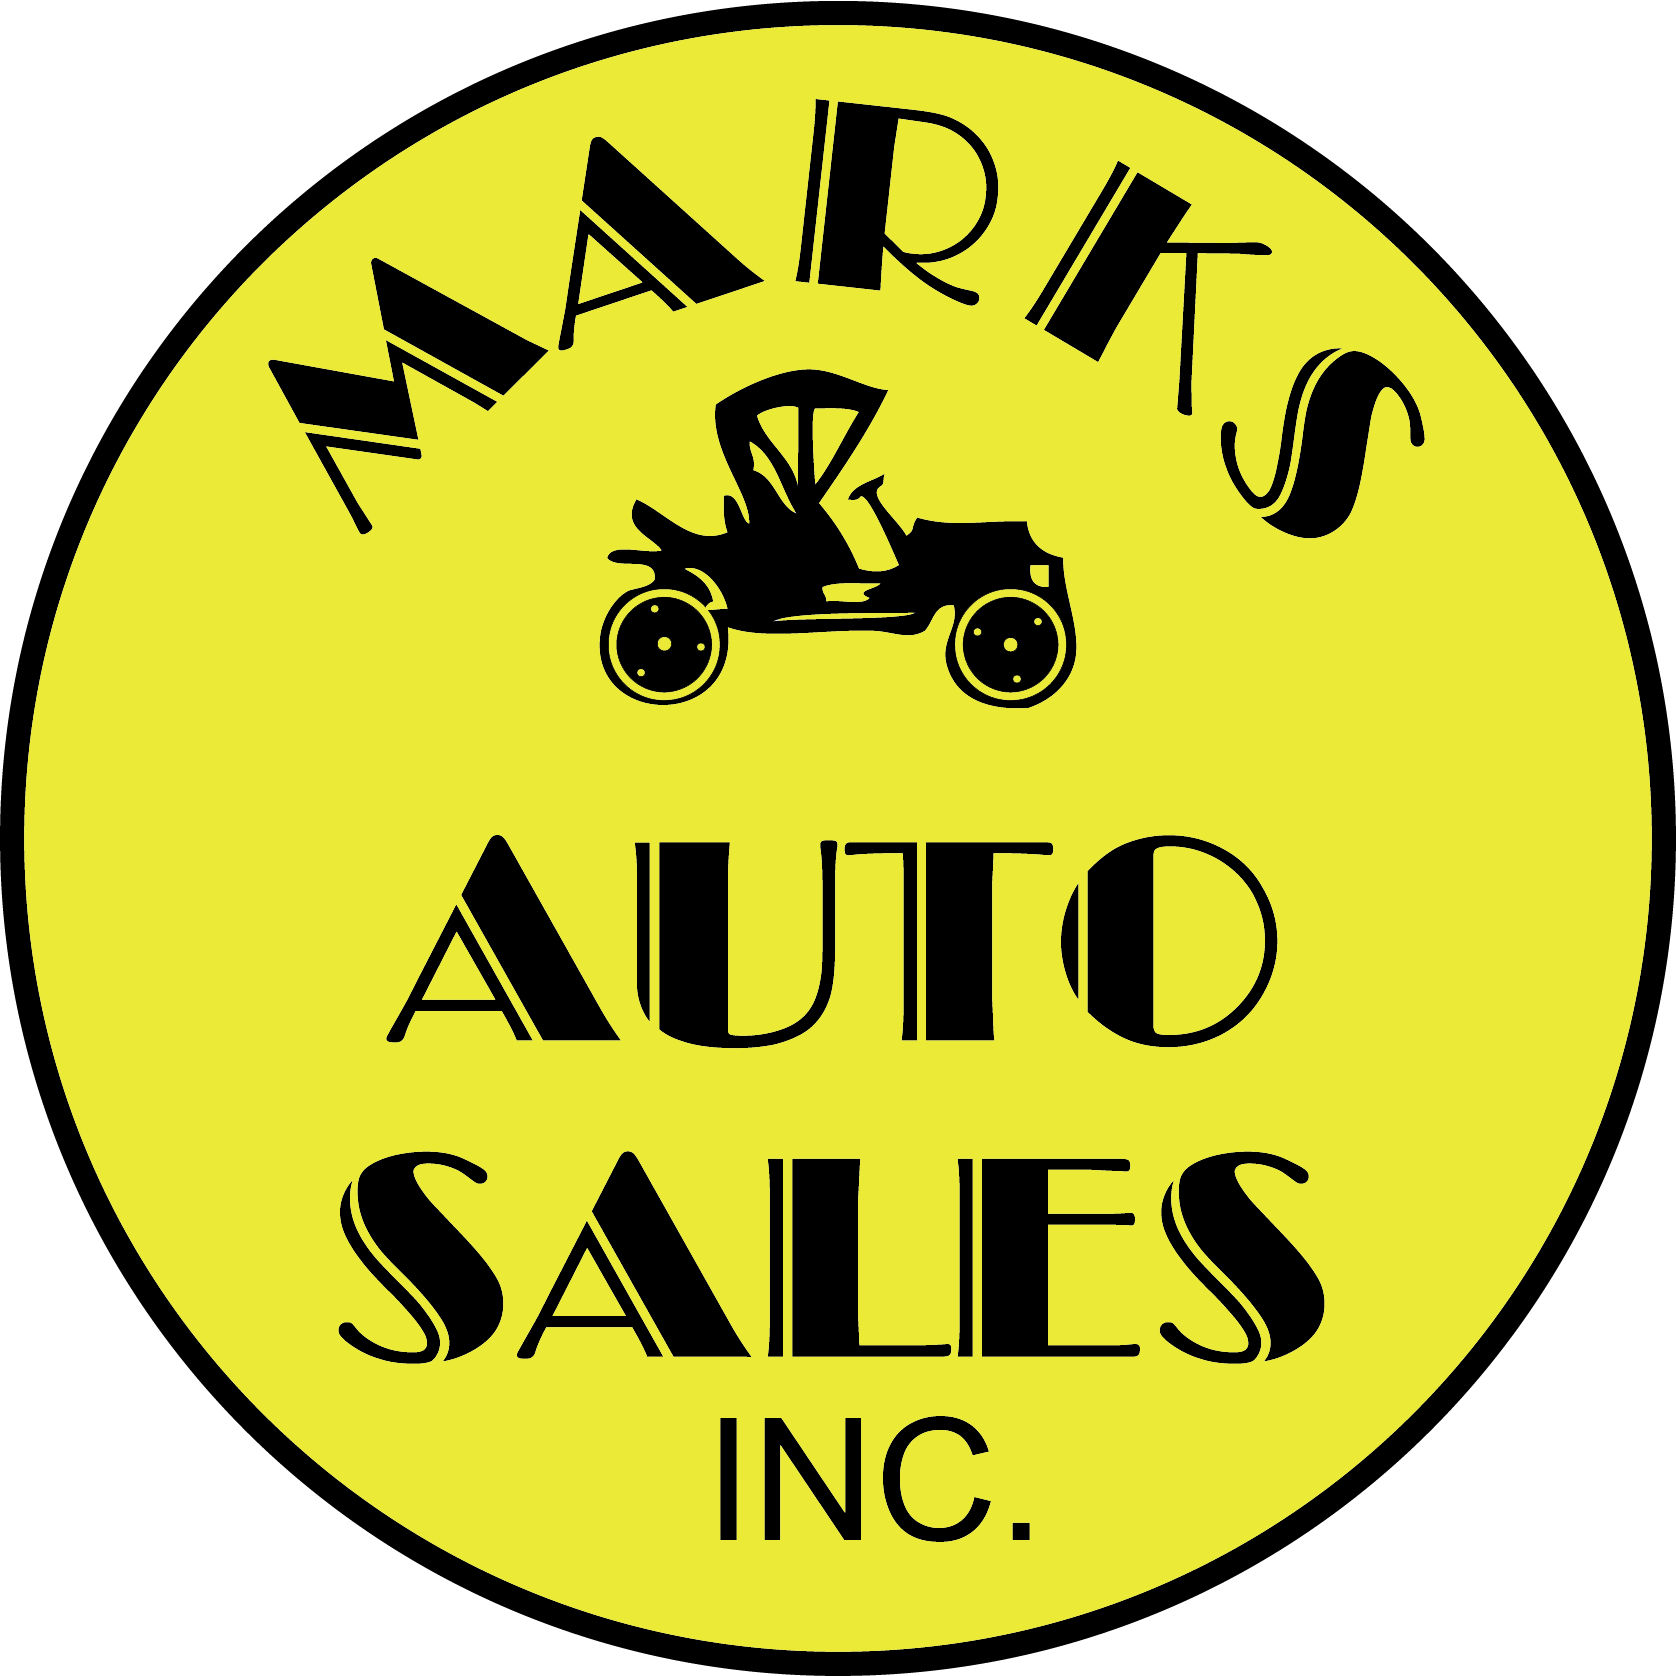 Mark's Auto Sales Inc.